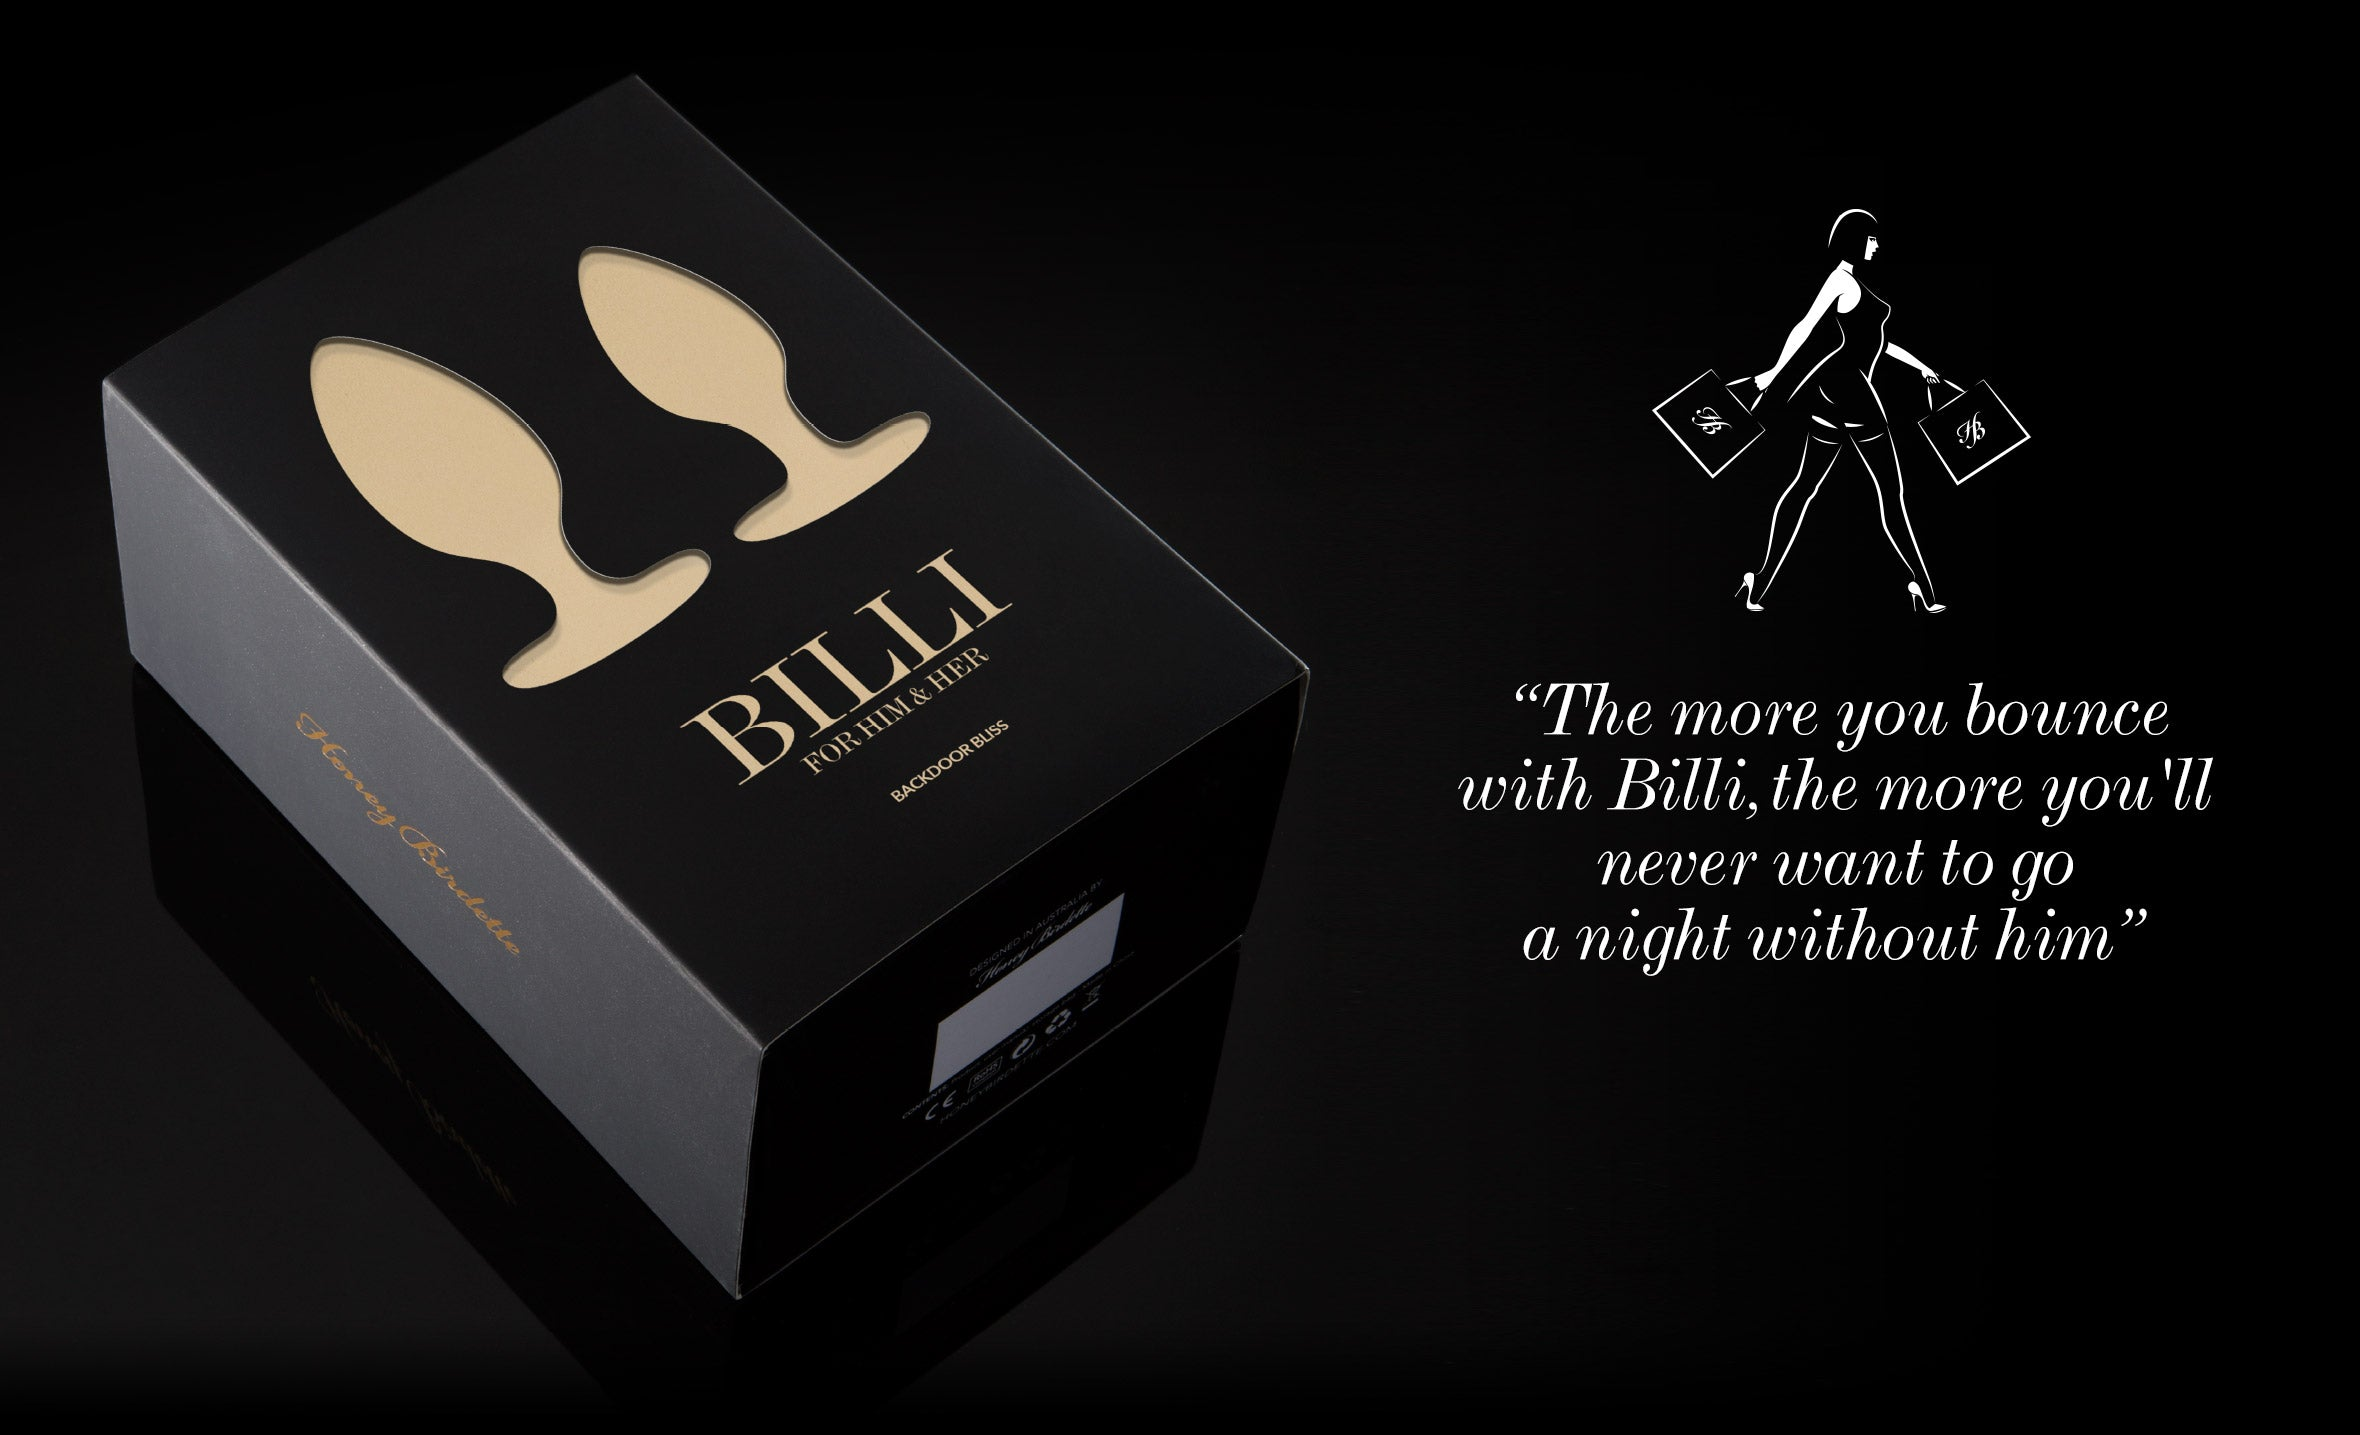 Billi packaging image | Honey Birdette